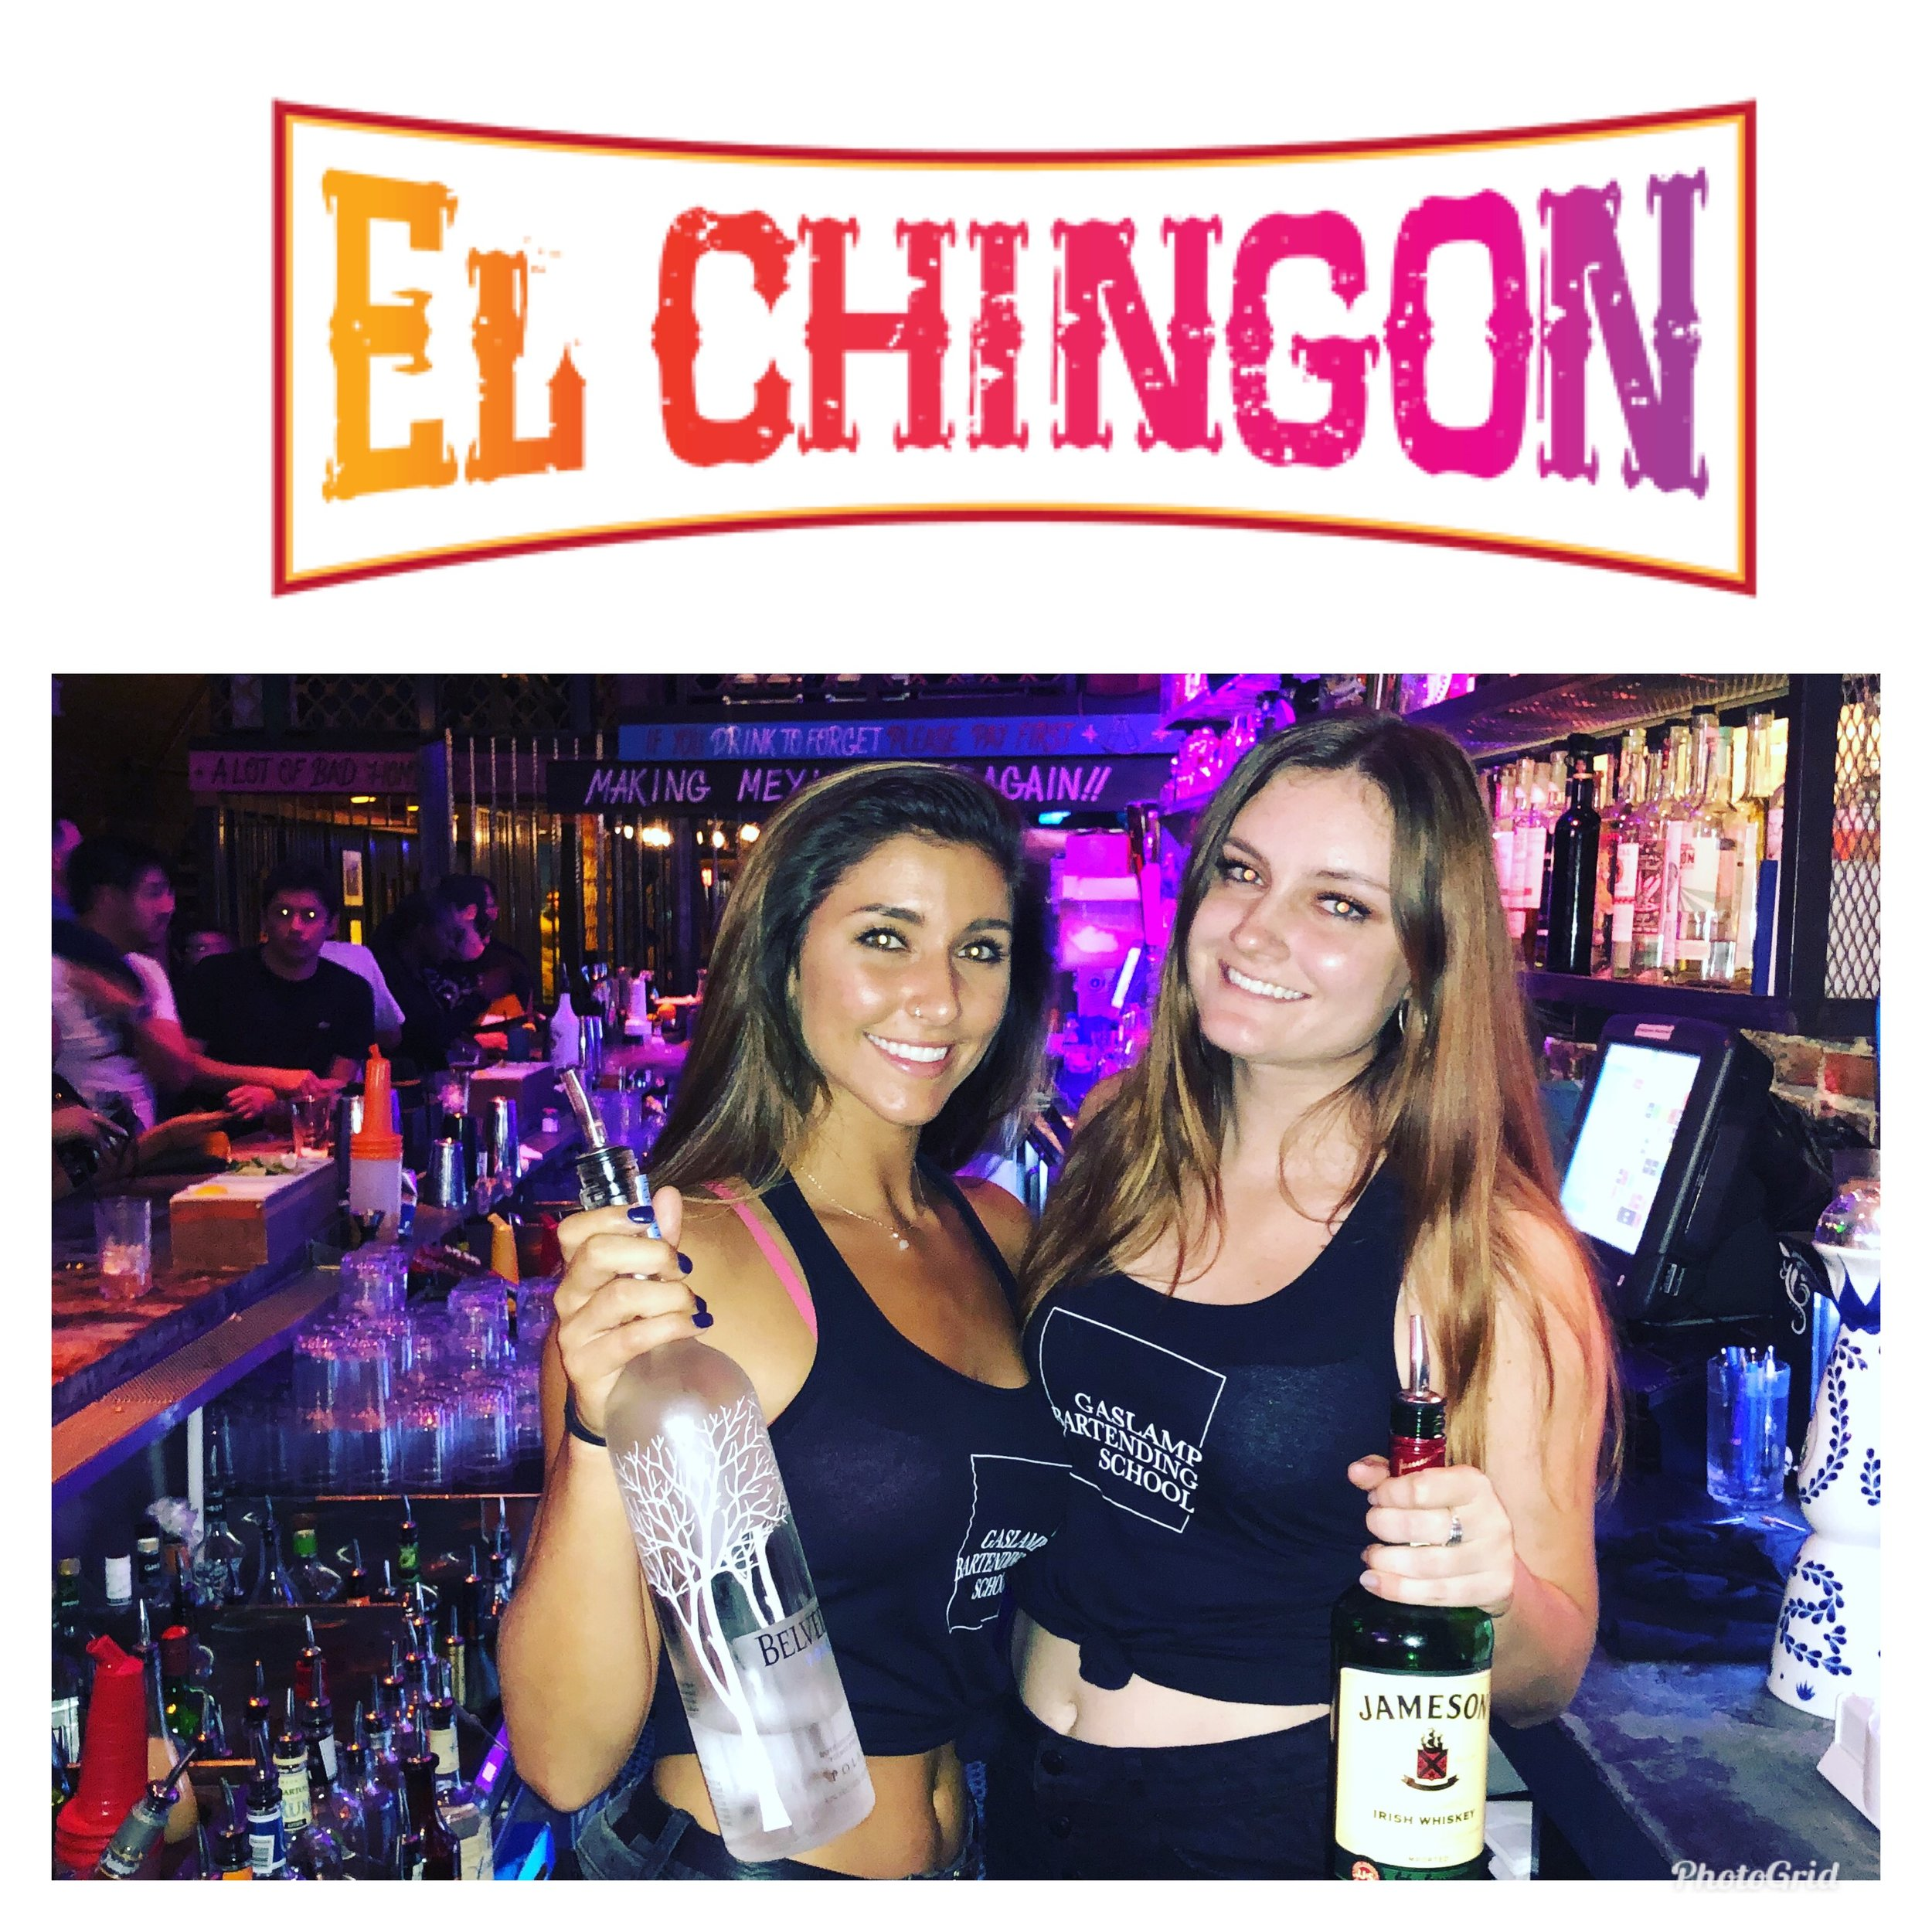 """Our monthly GBS event at El Chingon is not only an opportunity to bartend high volume and get paid at SD's voted top bar, but its also """"industry night"""", the weekly networking event and gathering for local hospitality professionals. This is a major move finding yourself from your couch or boring job to bartending at El Chingon in weeks! ONLY AT GBS!"""